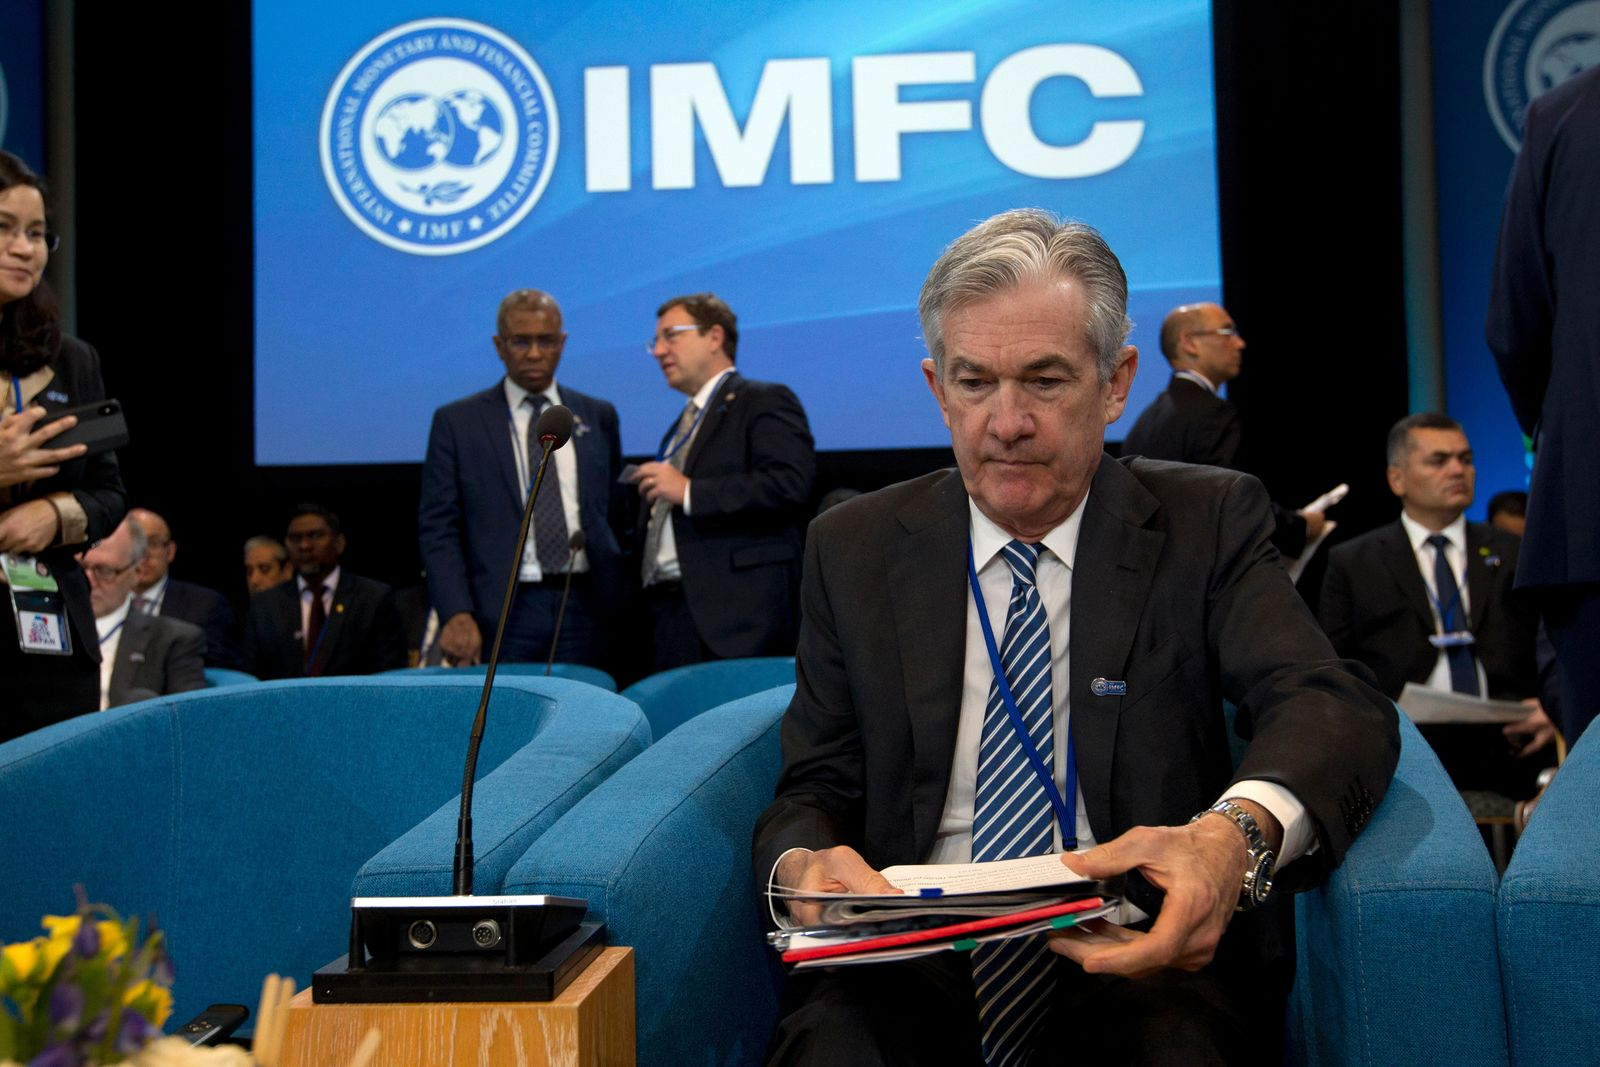 Federal Reserve Board Chair Jerome Powell during the International Monetary and Financial Committee meeting, at the World Bank/IMF Spring Meetings in Washington, Saturday, April 13, 2019. (AP Photo/Jose Luis Magana)